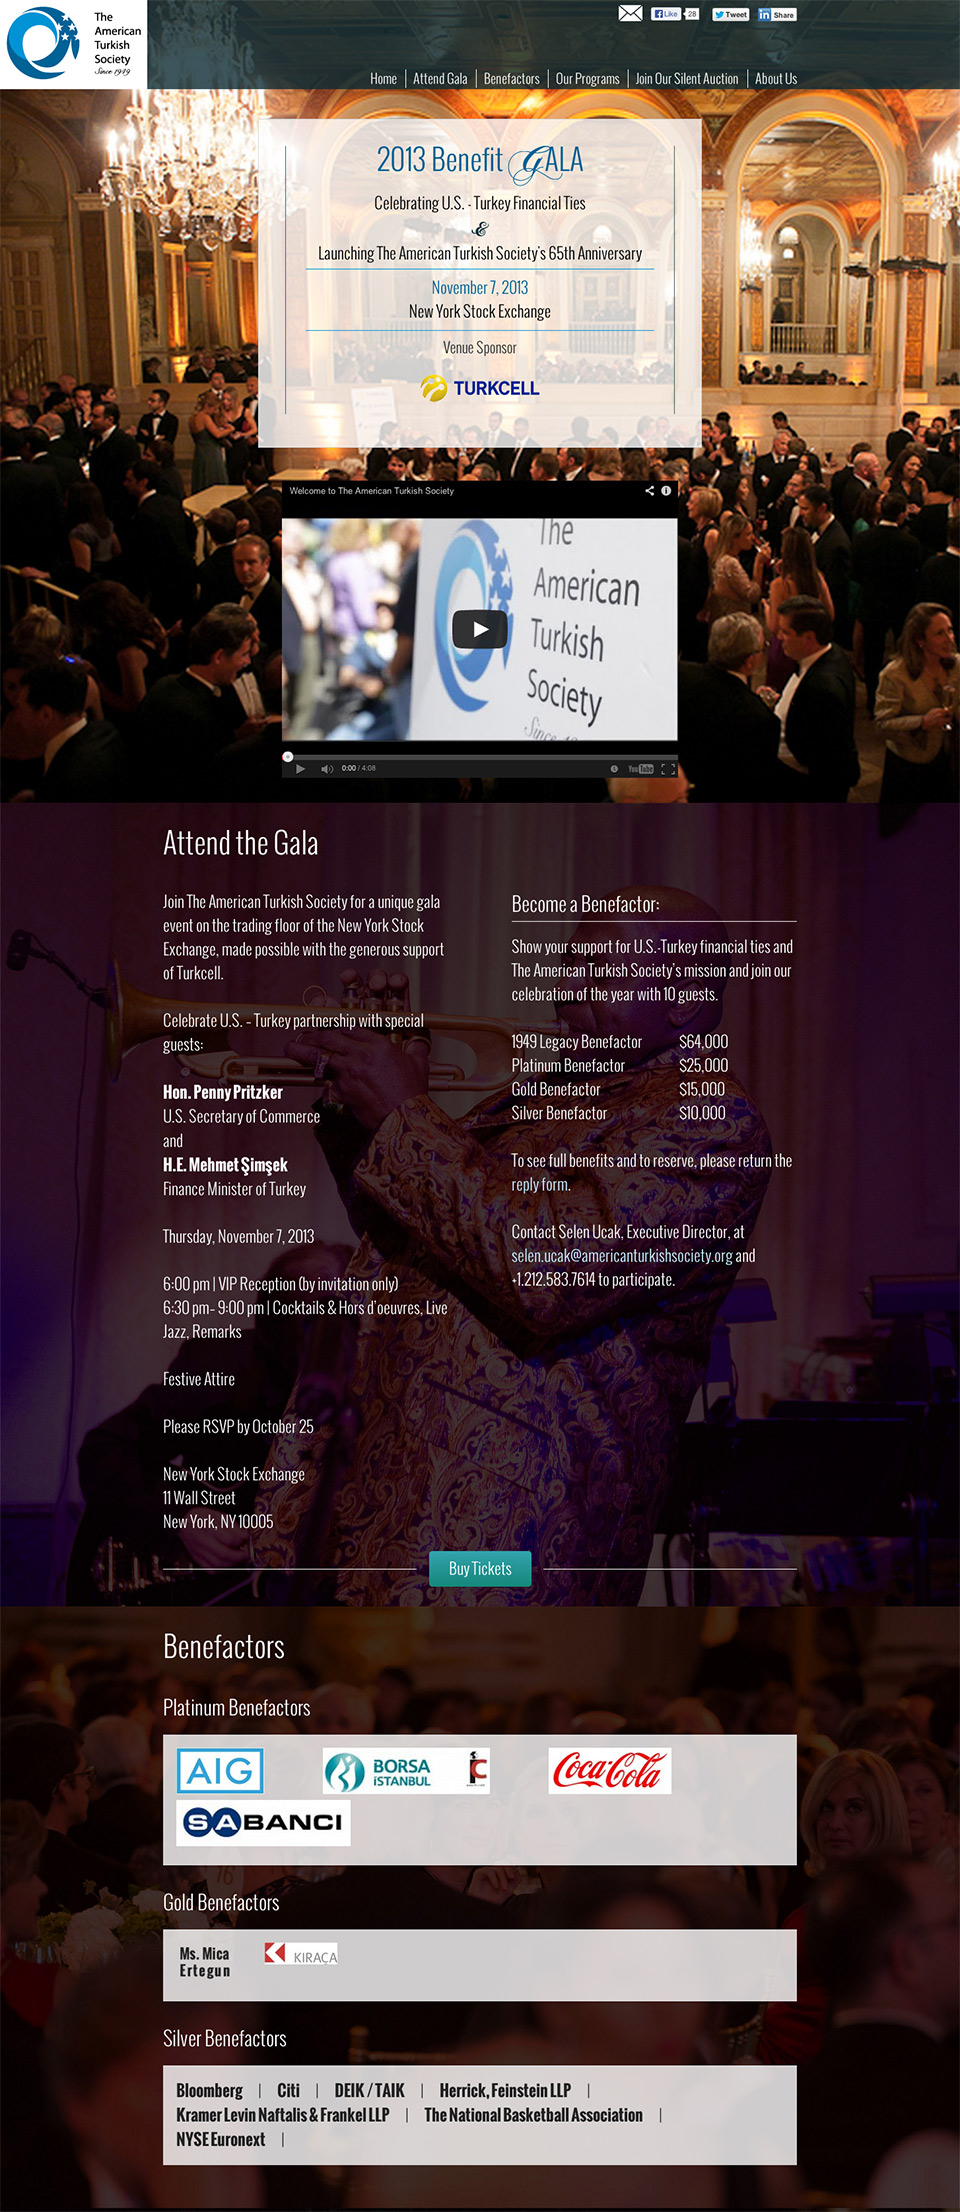 American Turkish Society Fundraising Microsite for Annual Gala: American Turkish Society Gala: Fundraising Microsite for Annual Benefit